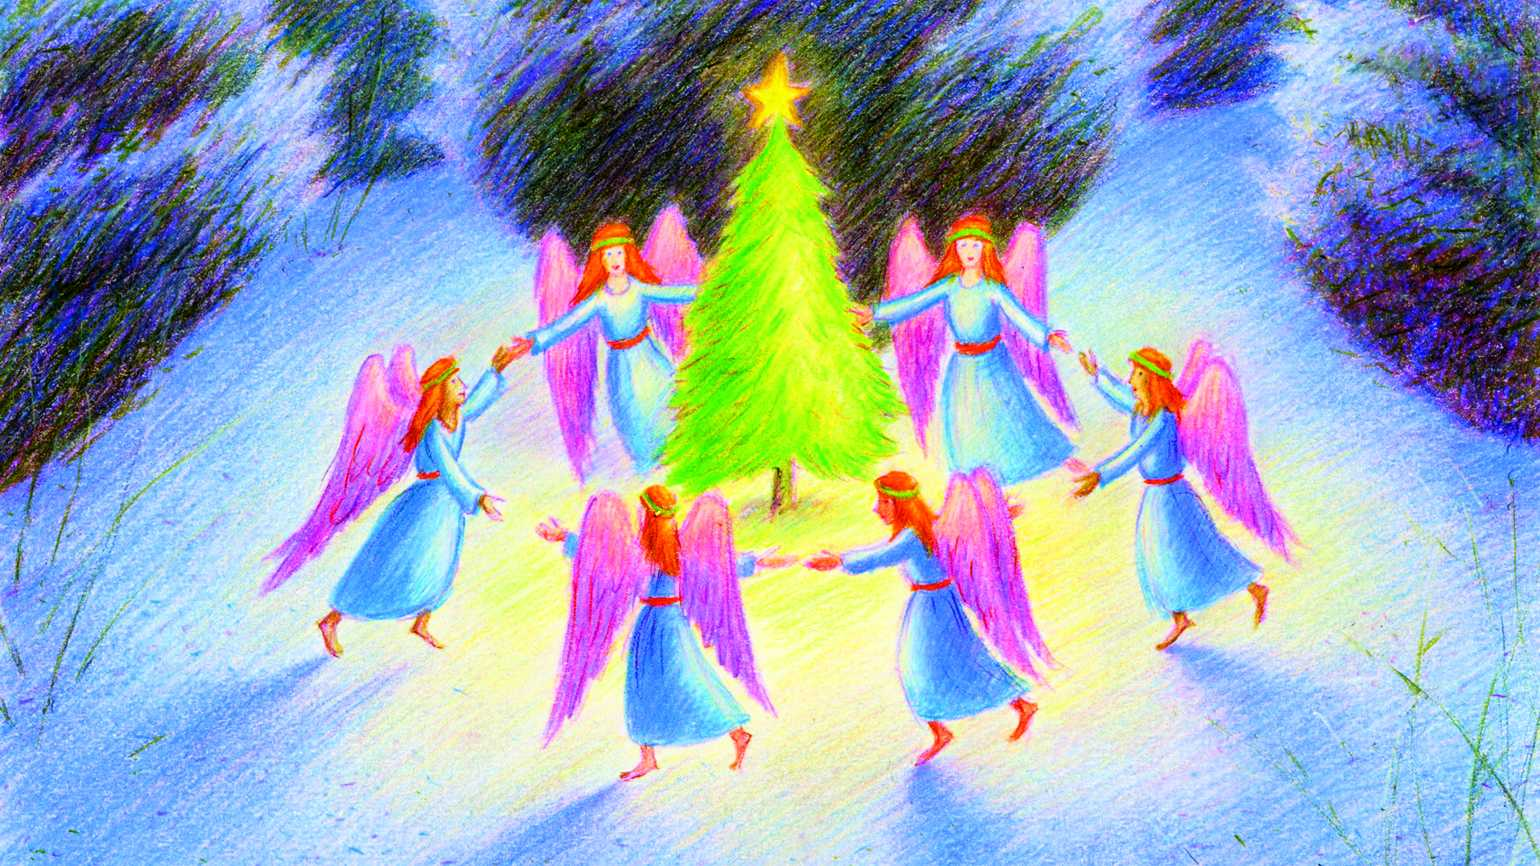 An artist's rendering of a ring of angels dancing around a Christmas tree